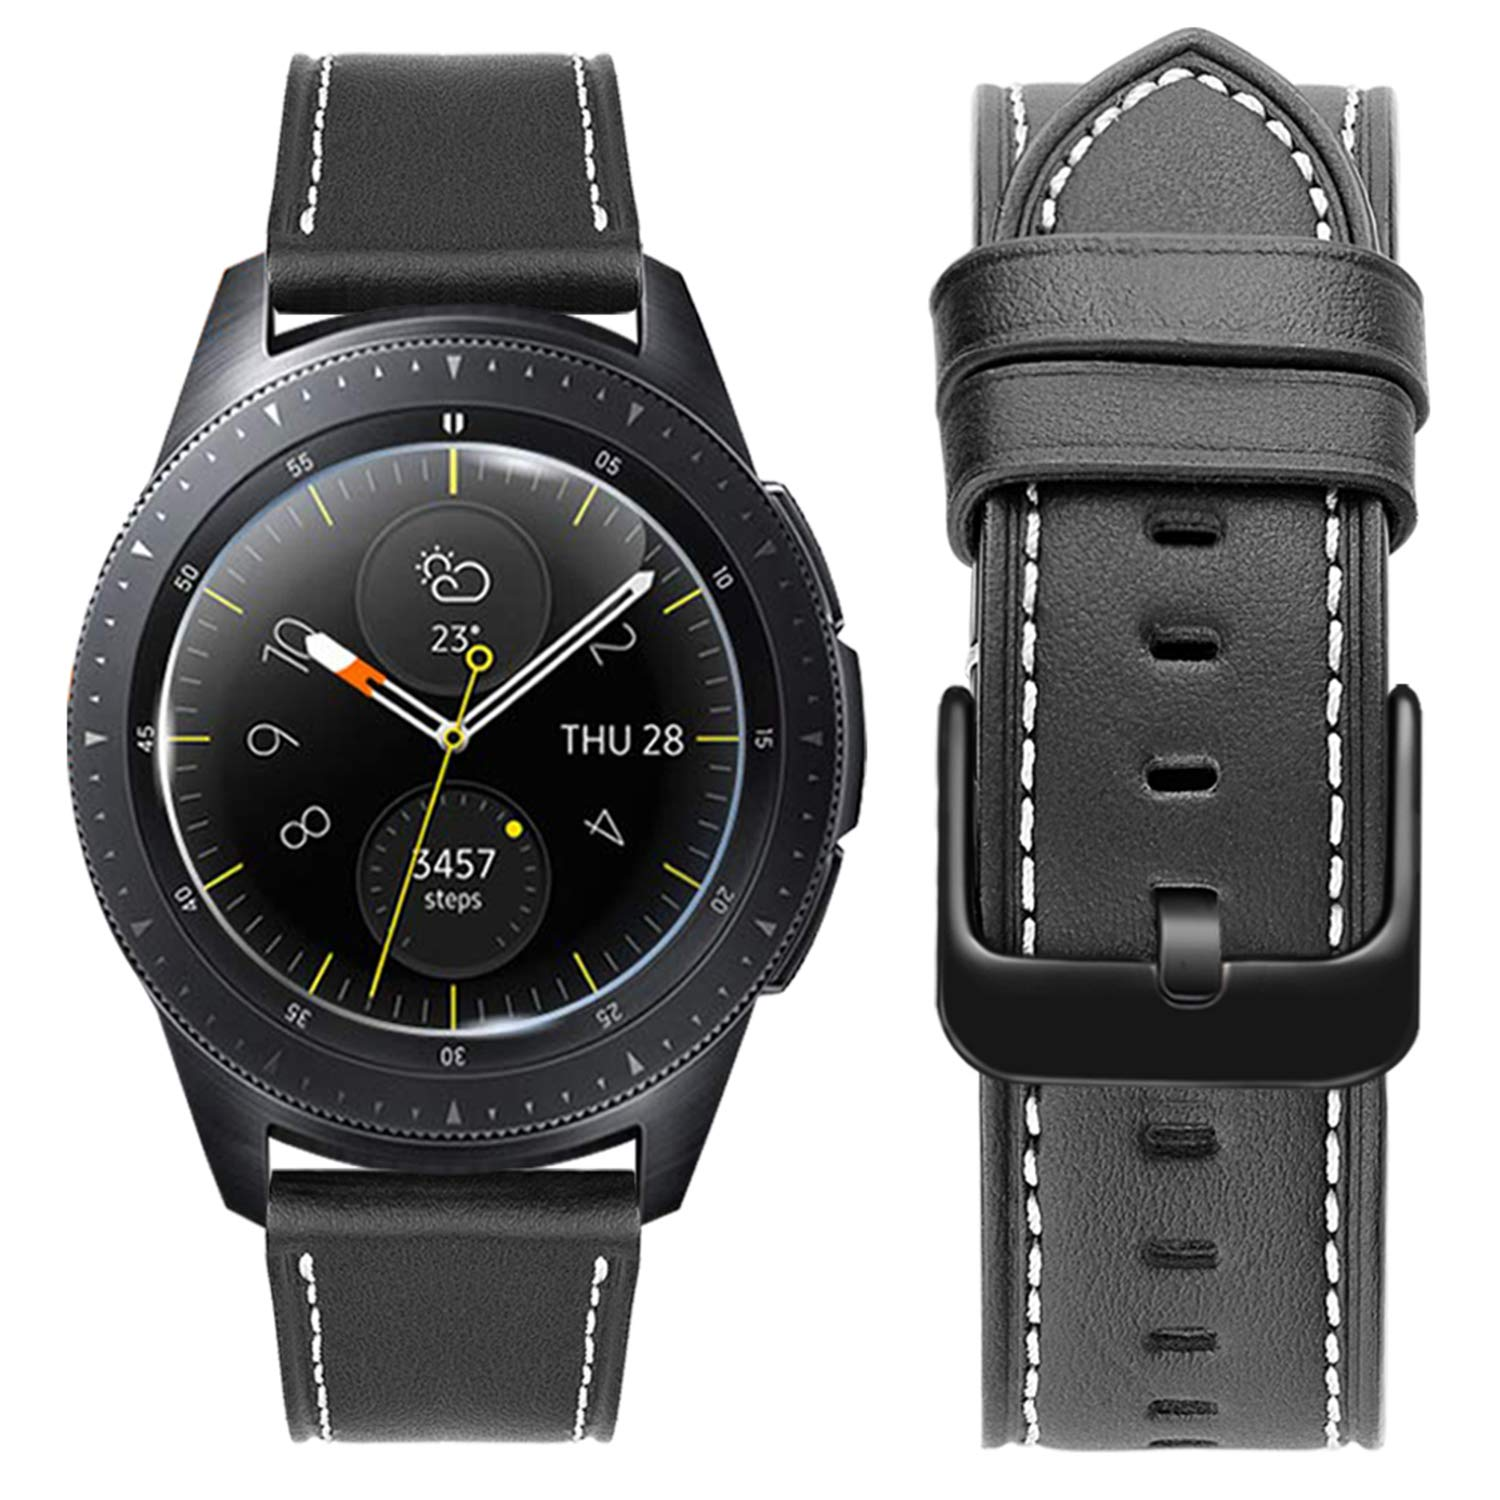 Gear S2 Classic Watch Straps,MroTech Premium Leather Bands with Black Buckle Gear S2 Classic Bands Replacement Watch Strap for Samsung Galaxy Watch ...